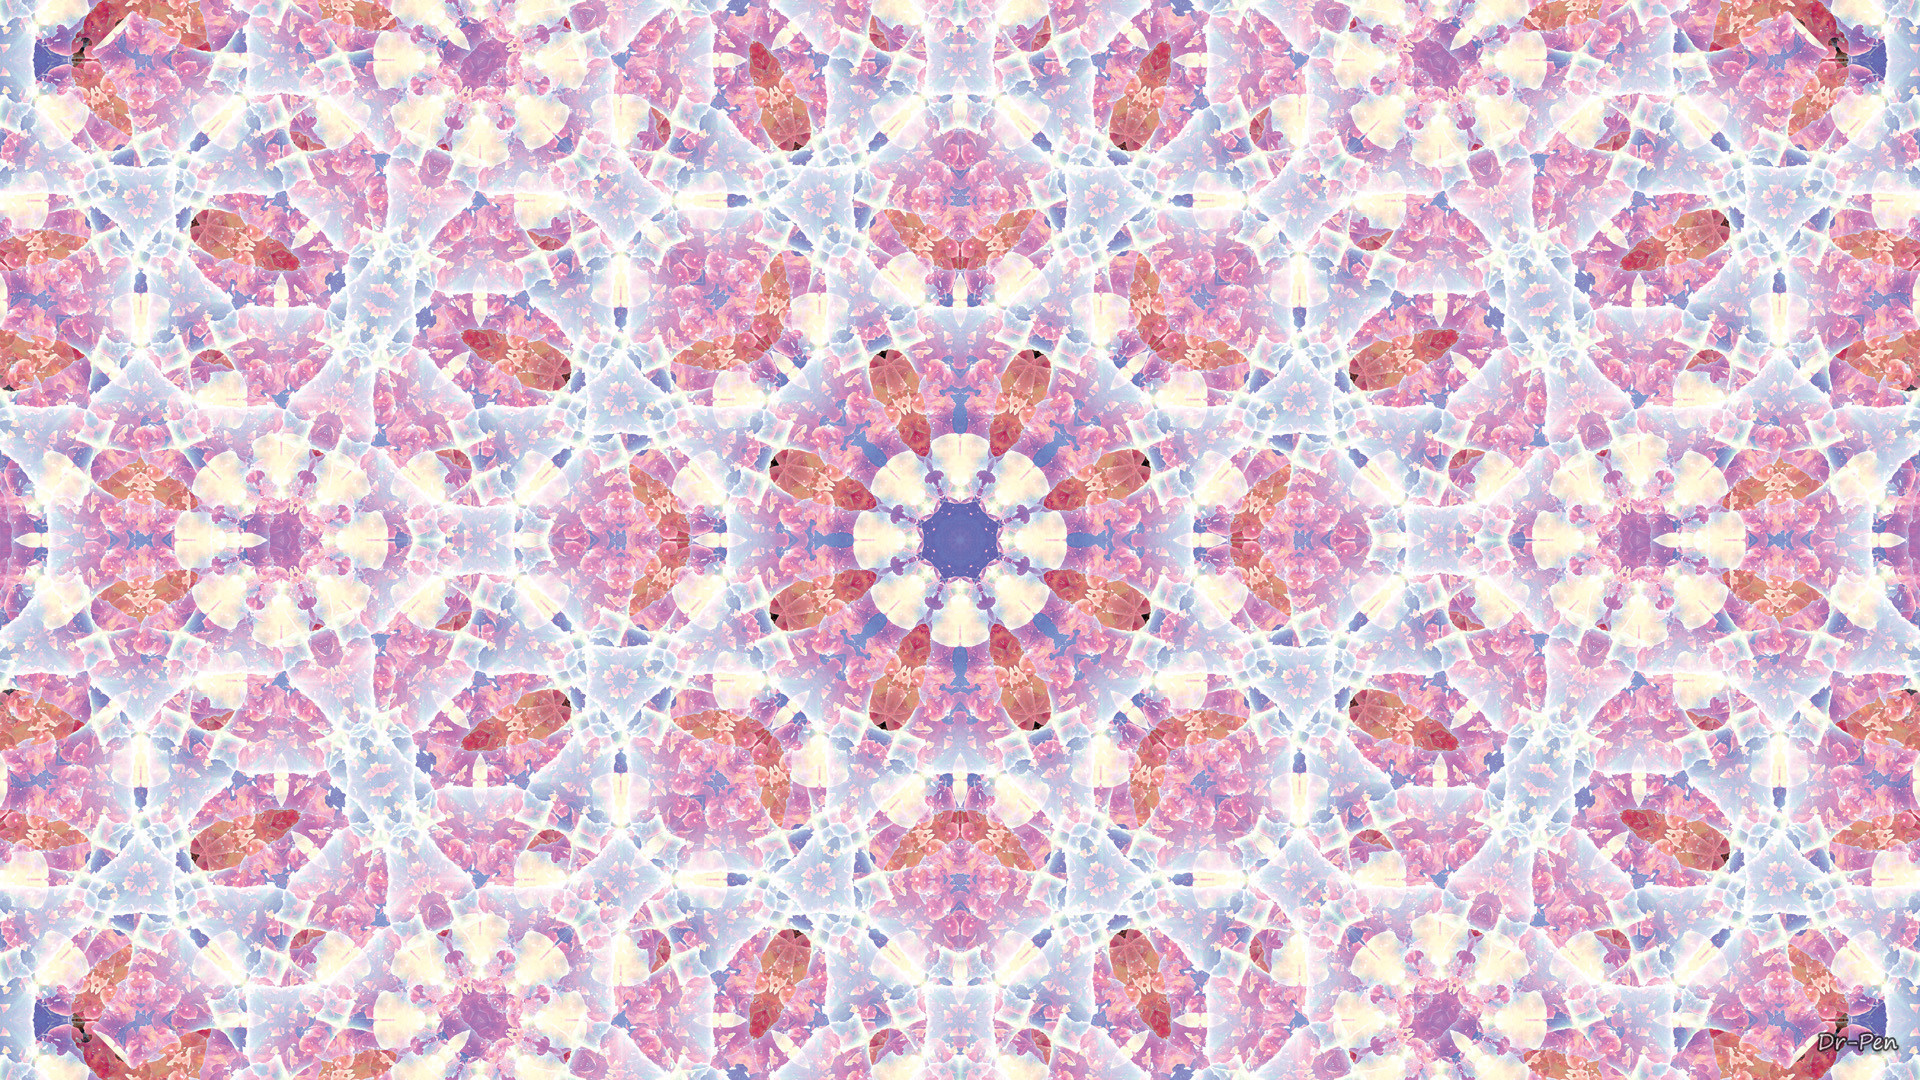 Res: 1920x1080, Art & Creative Wallpapers. Download the following Mandala Desktop ...